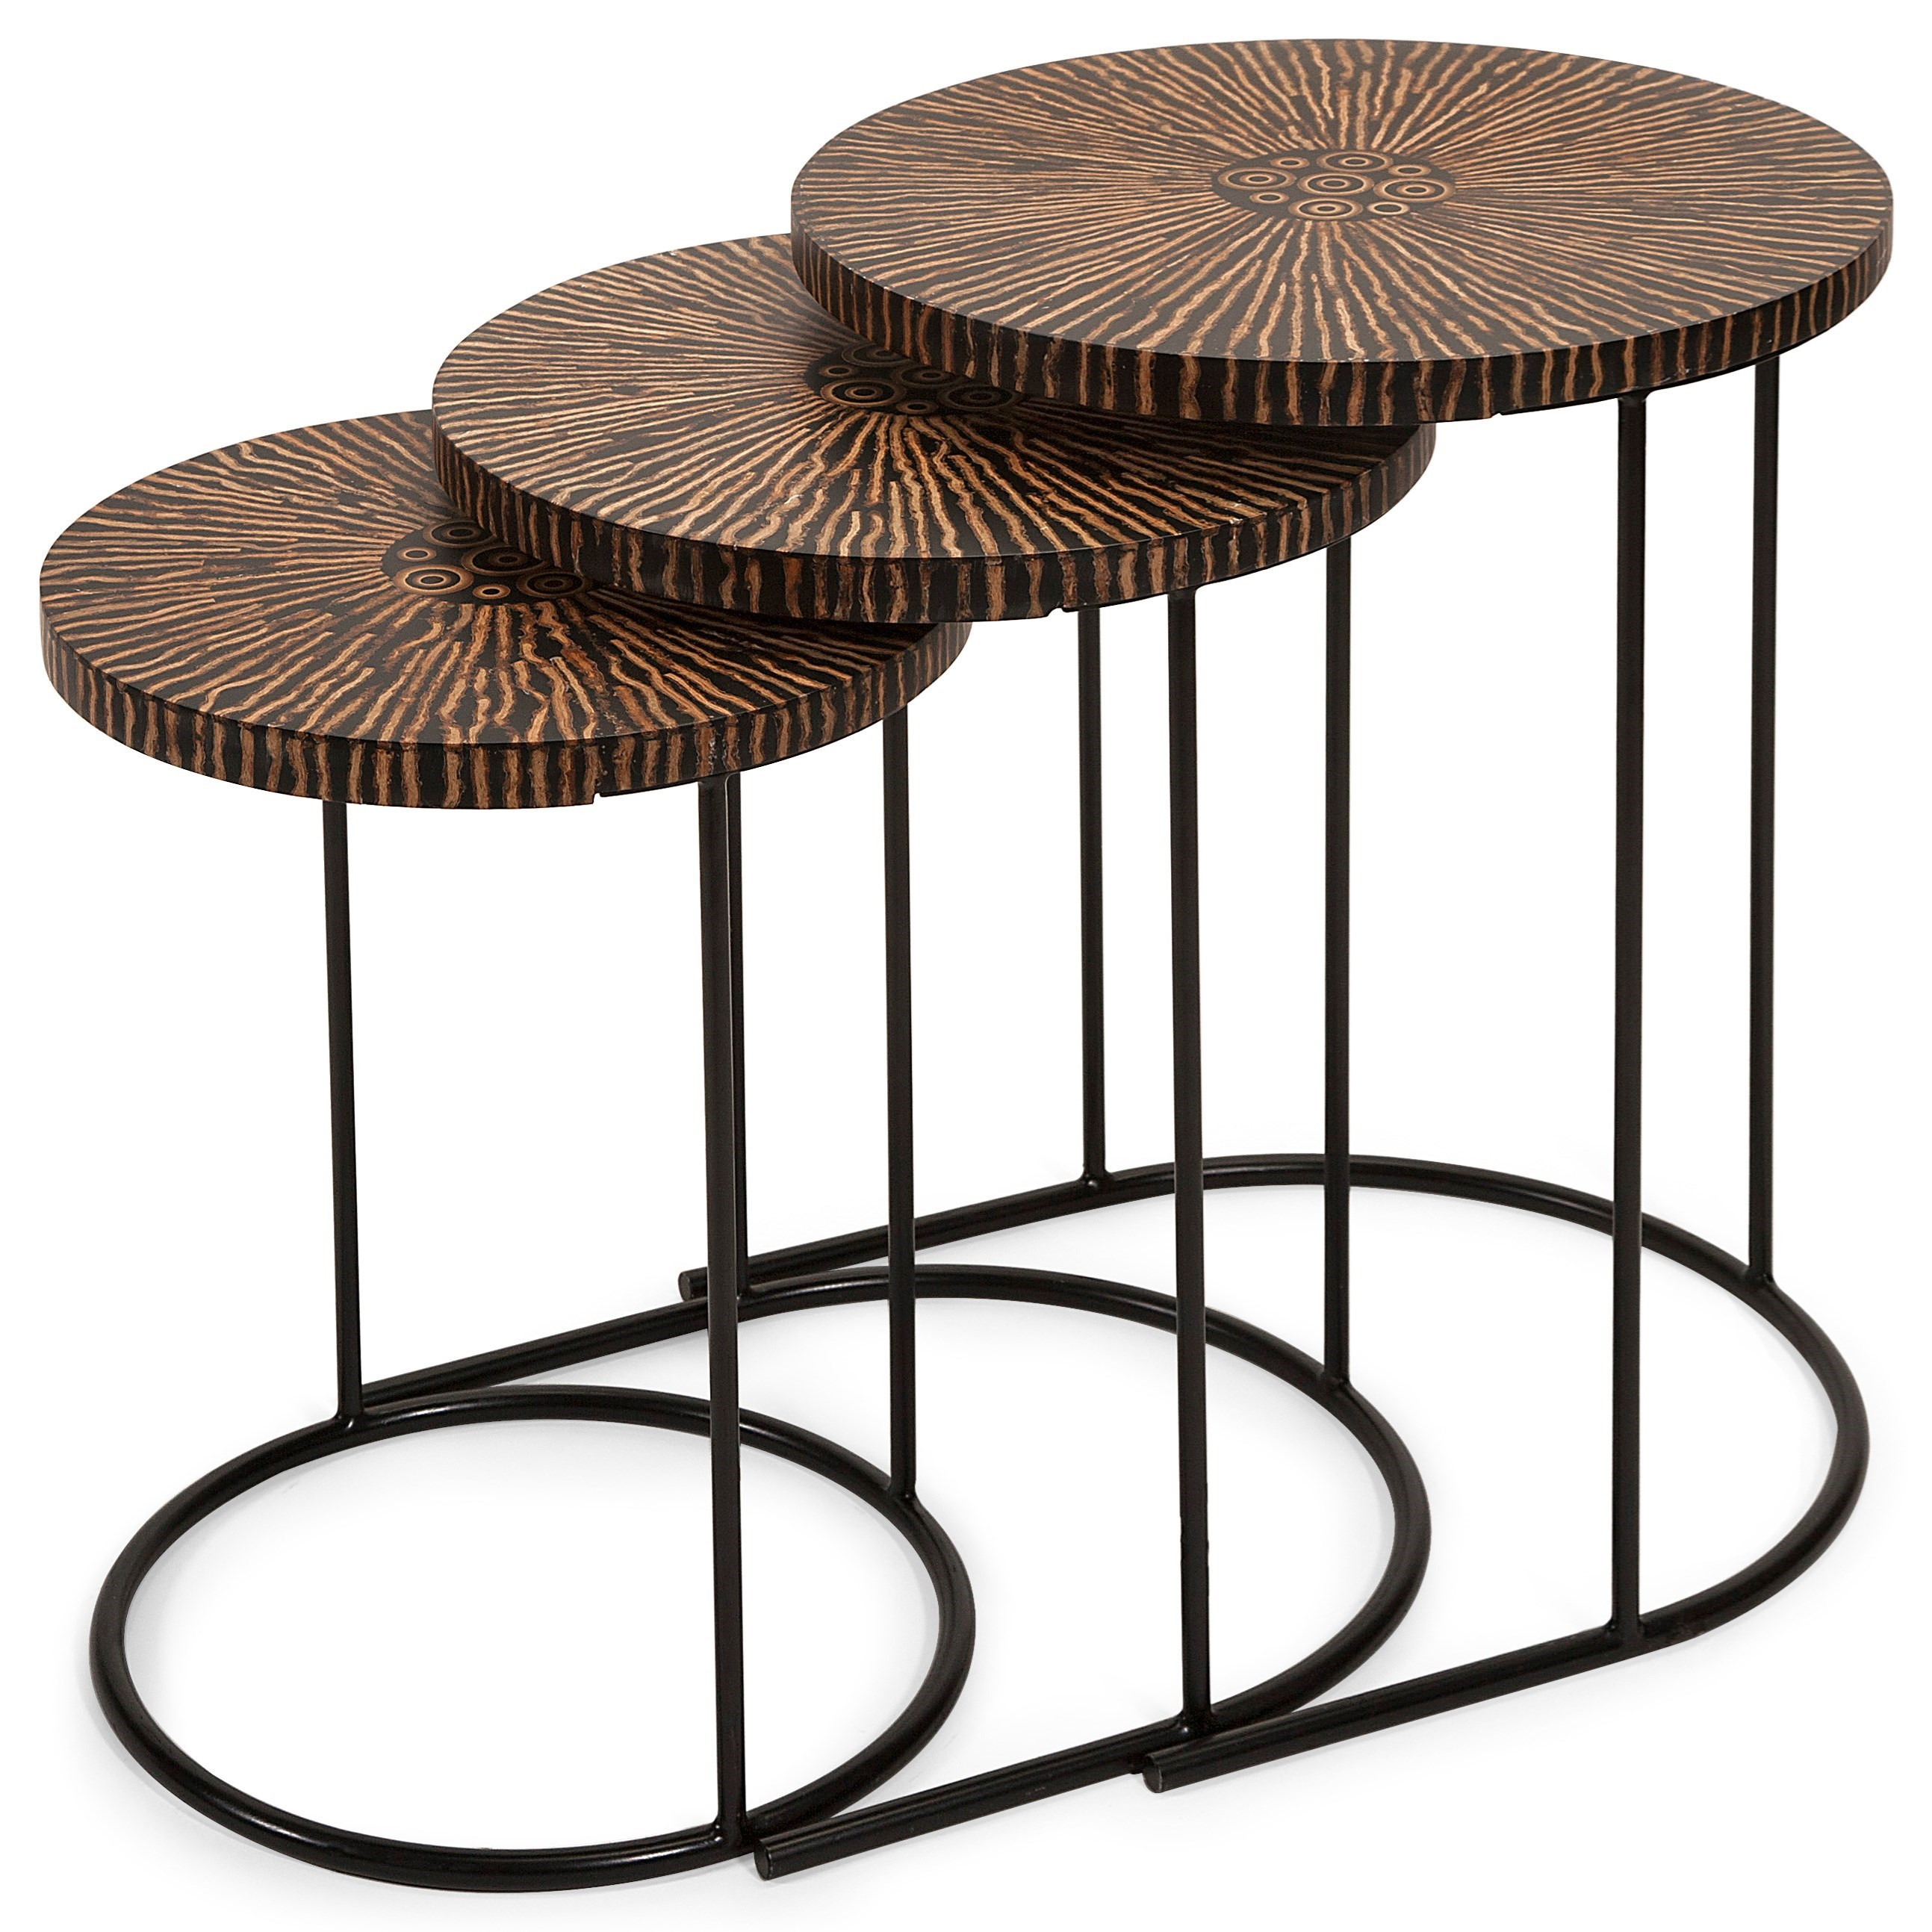 Accent Tables and Cabinets Hoki Coco Shell Tables - Set of 3 by IMAX Worldwide Home at Alison Craig Home Furnishings